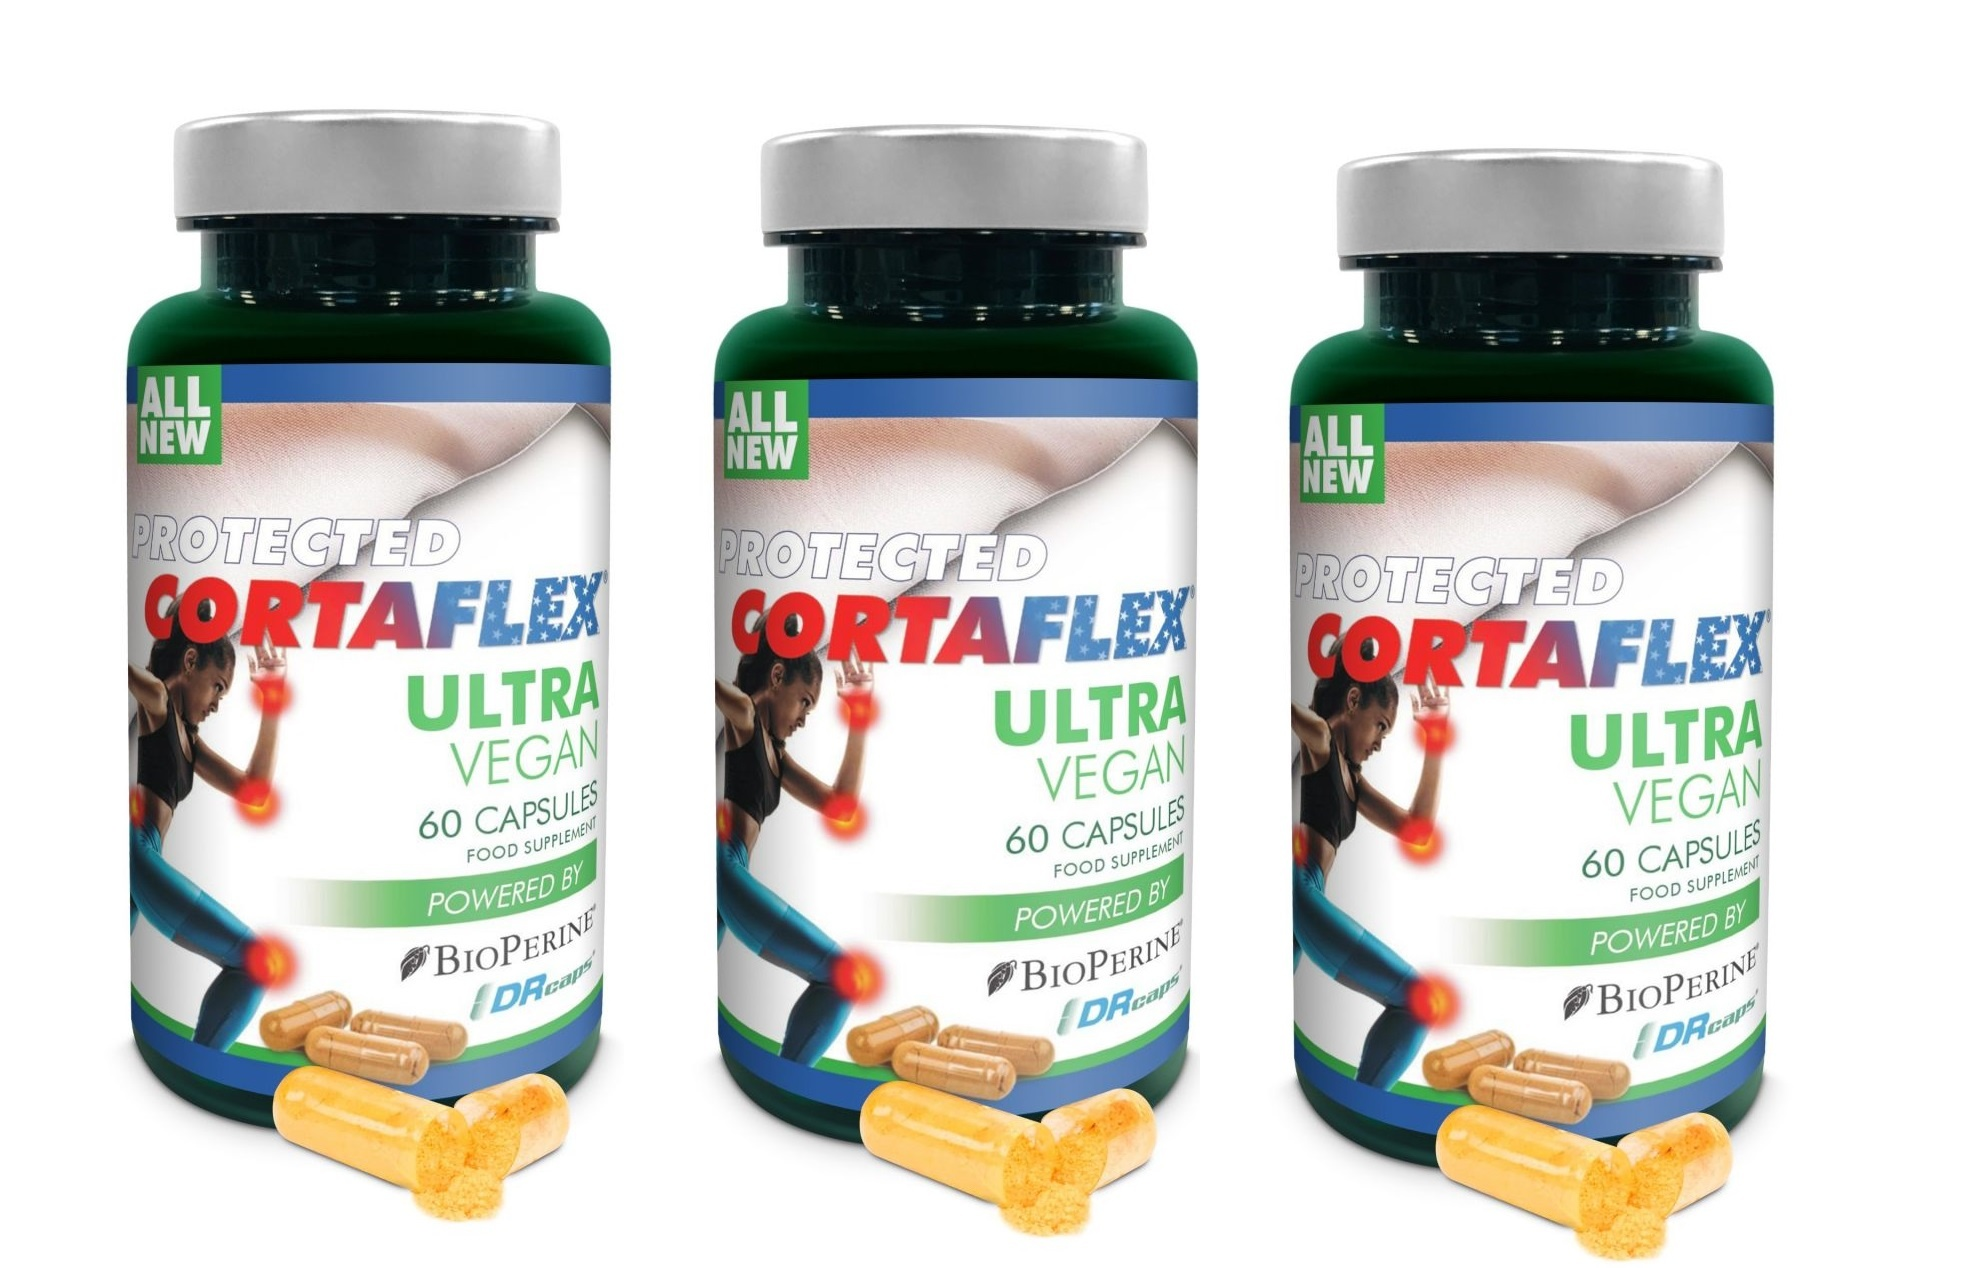 Dental Supps Protected Cortaflex Ultra Vegan, 60 Capsules, 3-pack